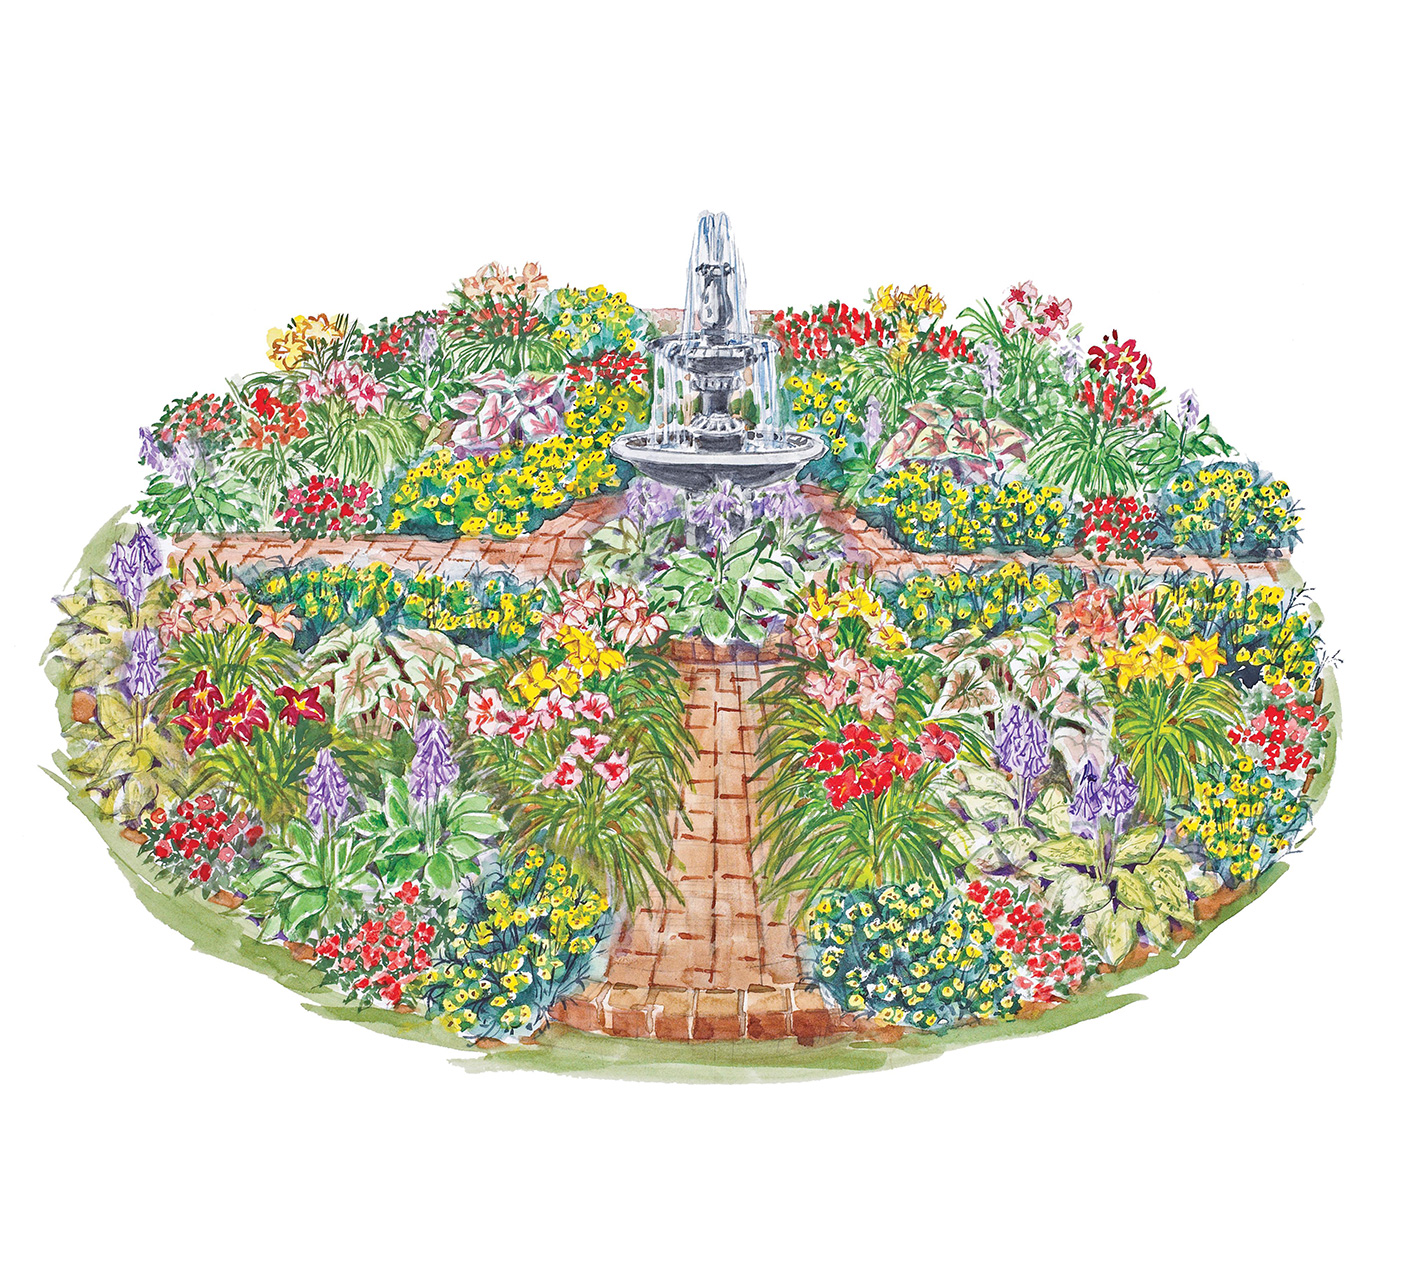 flower garden fountain illustration